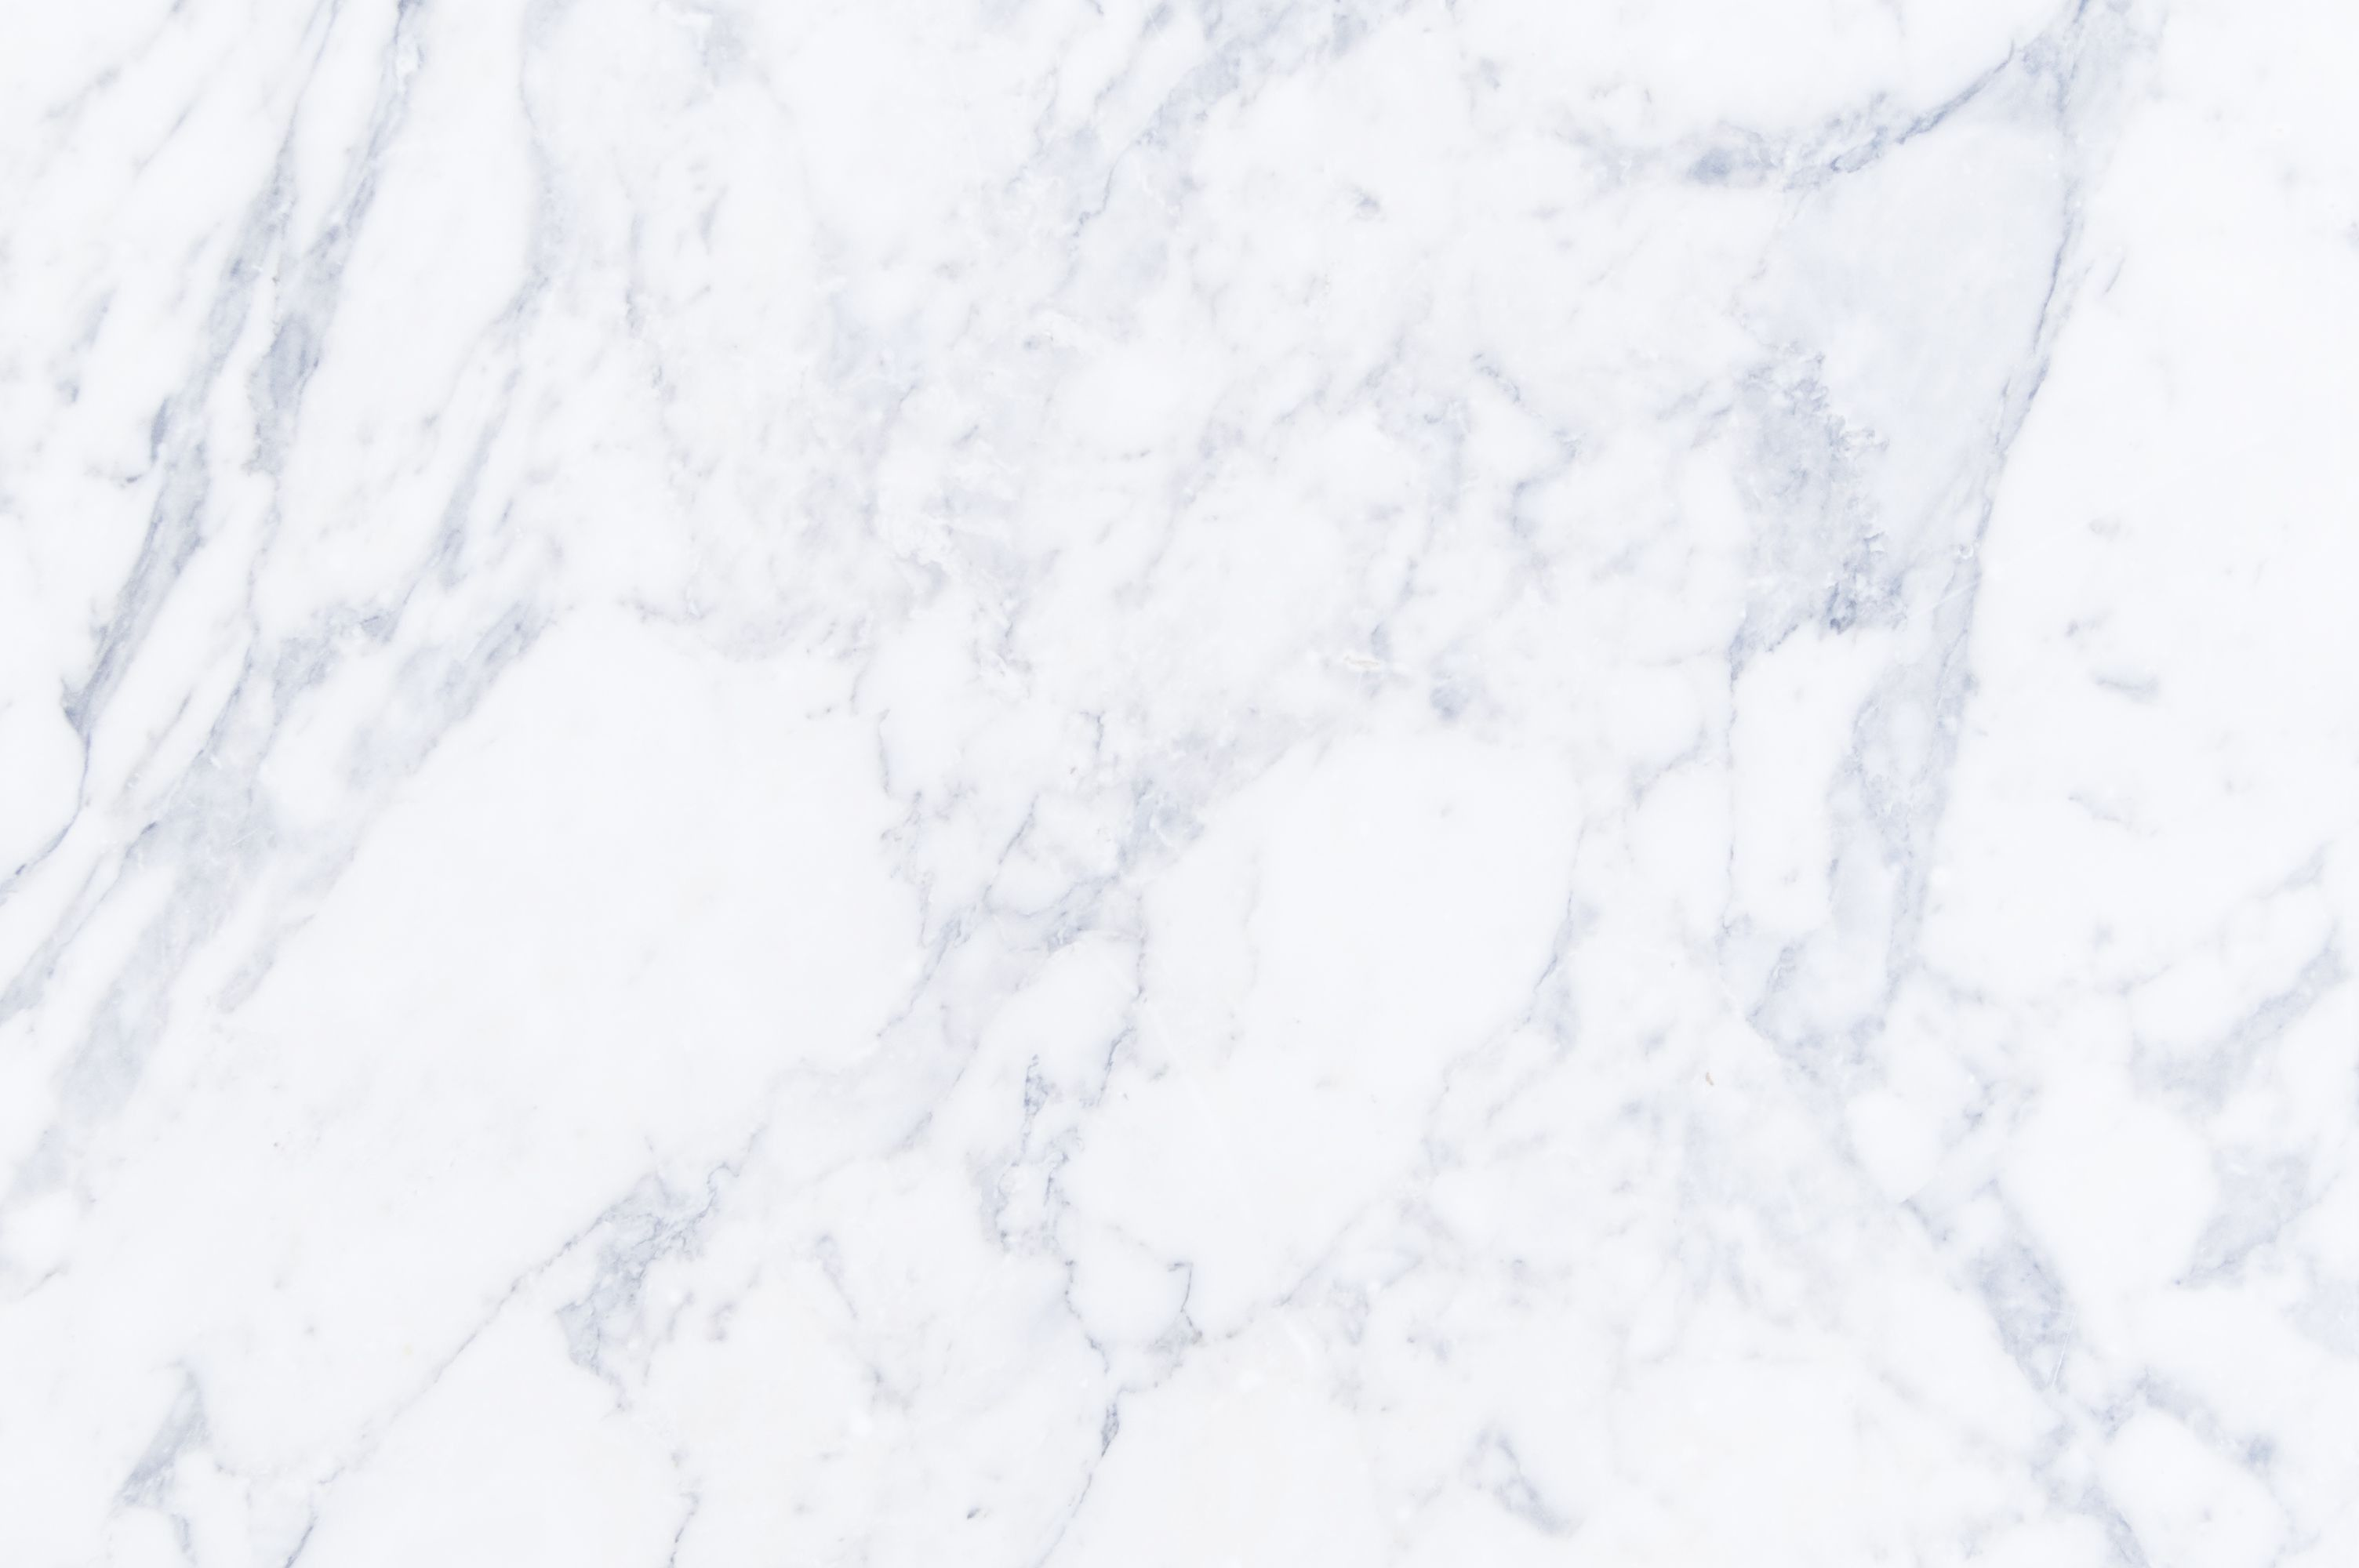 Aesthetic Gray Marble 4k Wallpapers Top Free Aesthetic Gray Marble 4k Backgrounds Wallpaperaccess